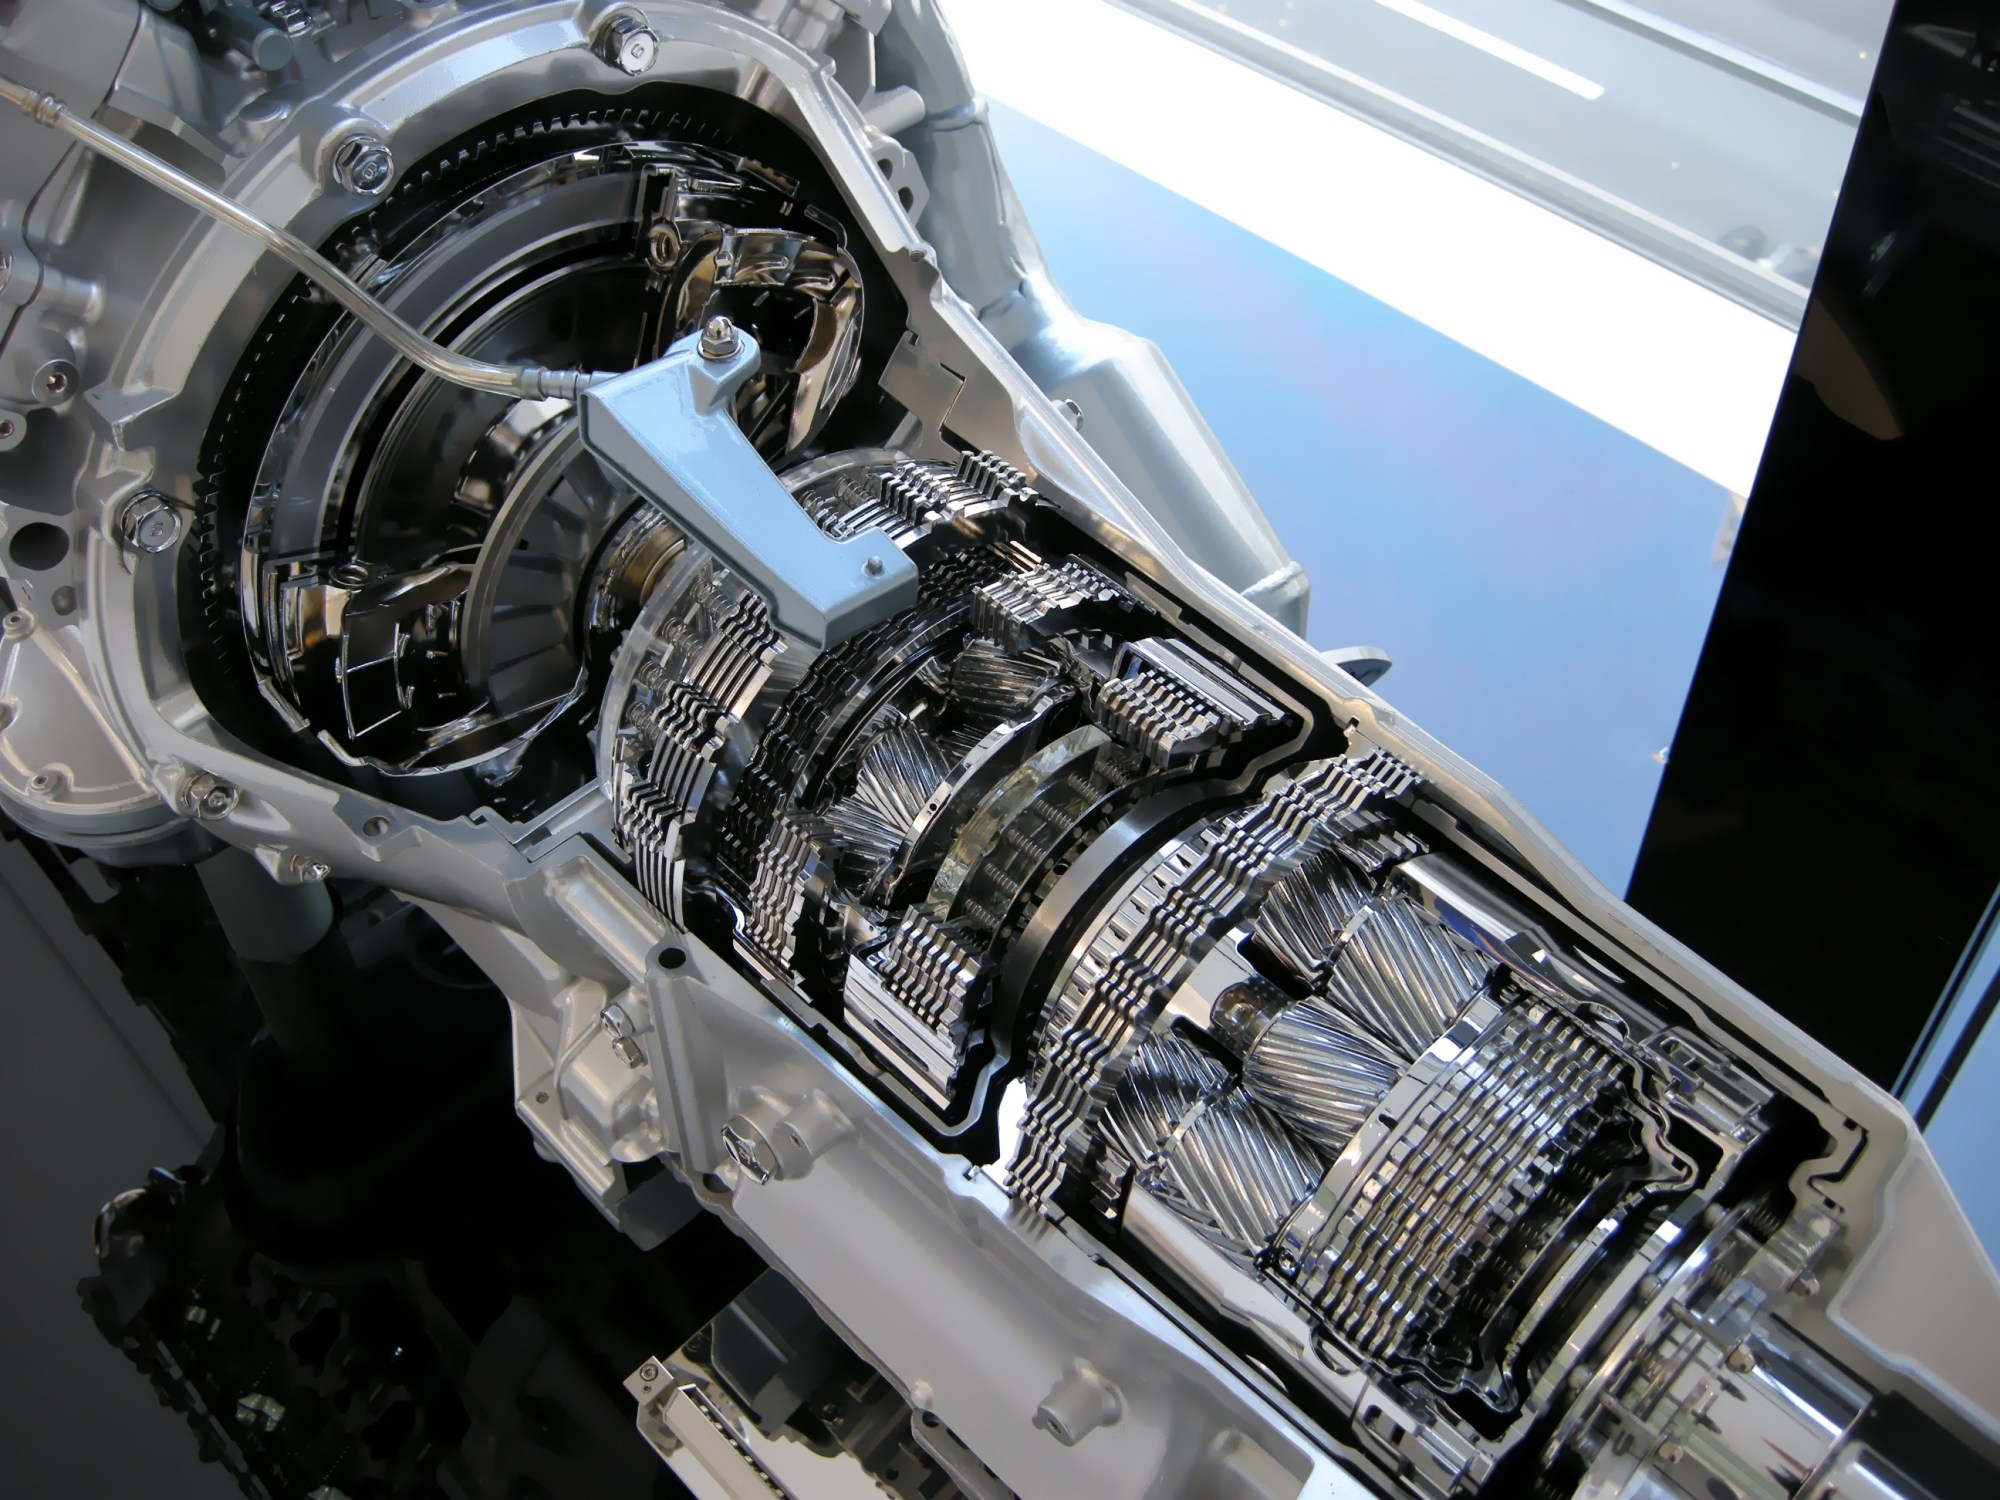 hight resolution of cutaway car transmission with exposed gears and internal machinery